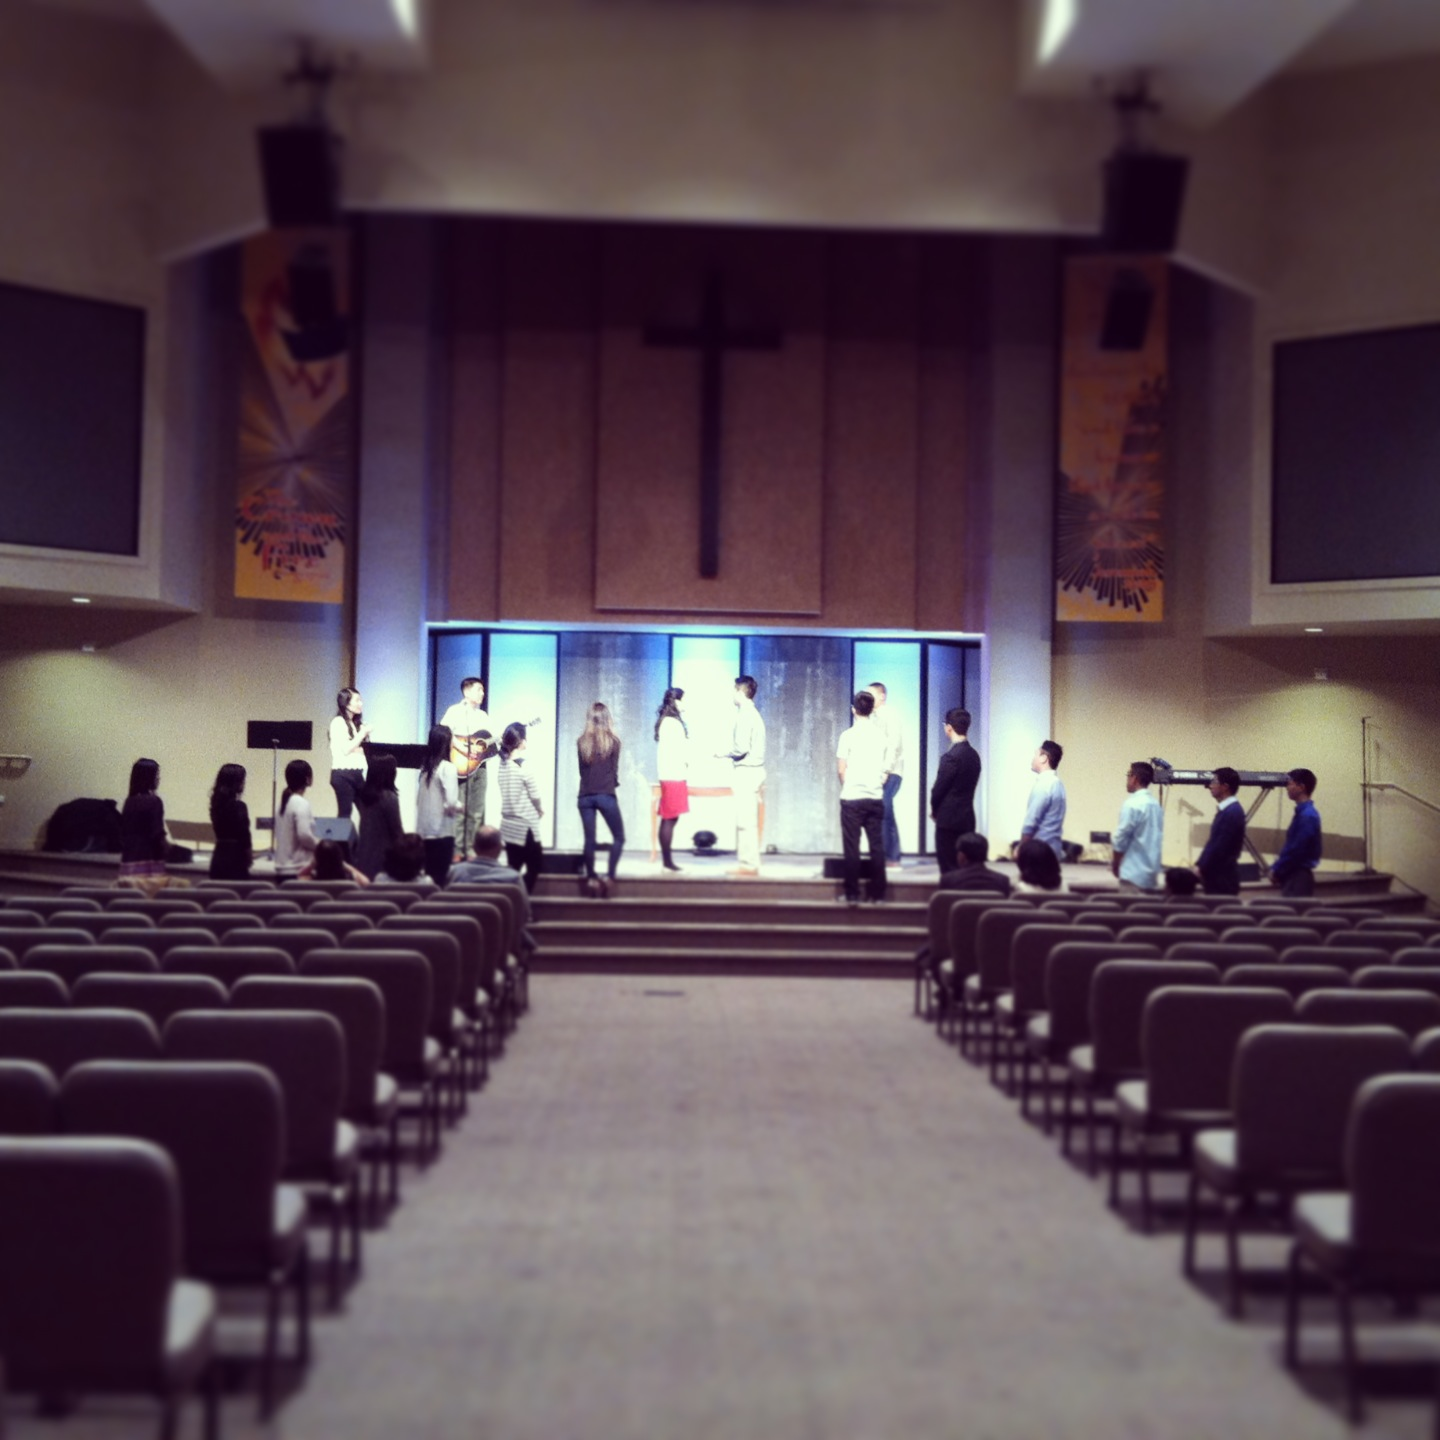 After lunch, we headed to Foster City to Central Peninsula Church for the wedding rehearsal.